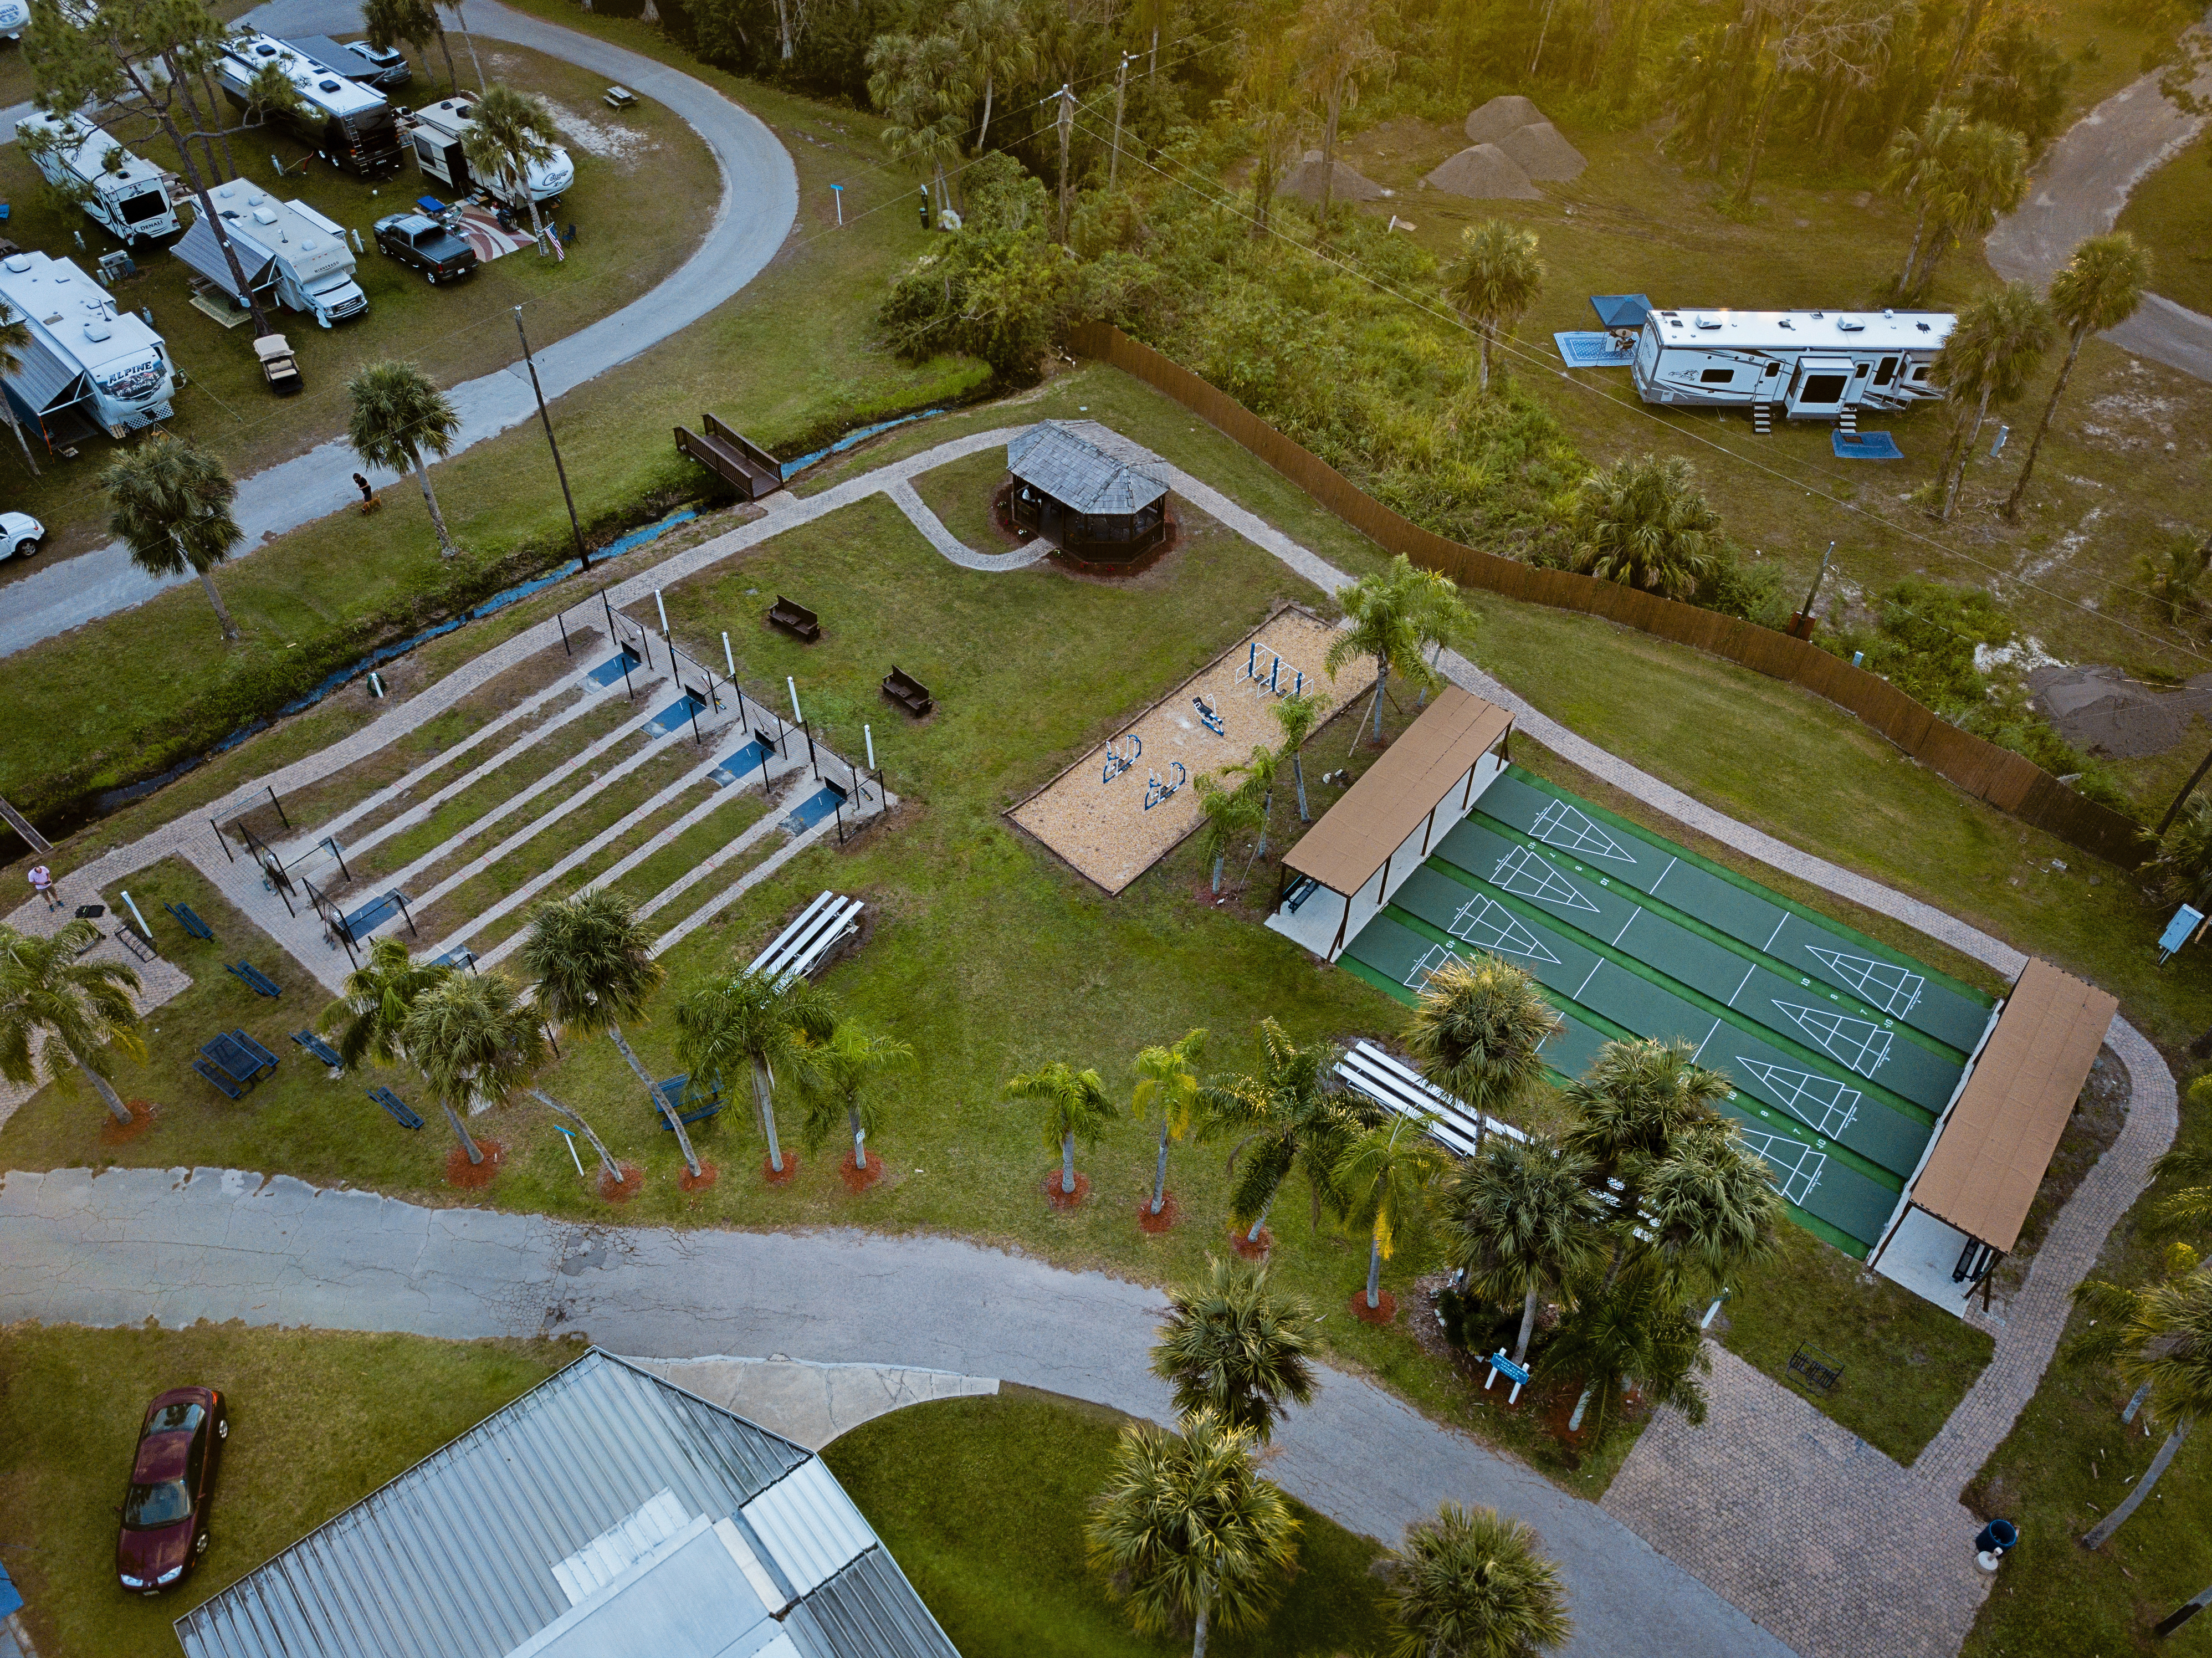 Our outdoor fitness area, horseshoes and shuffleboard.